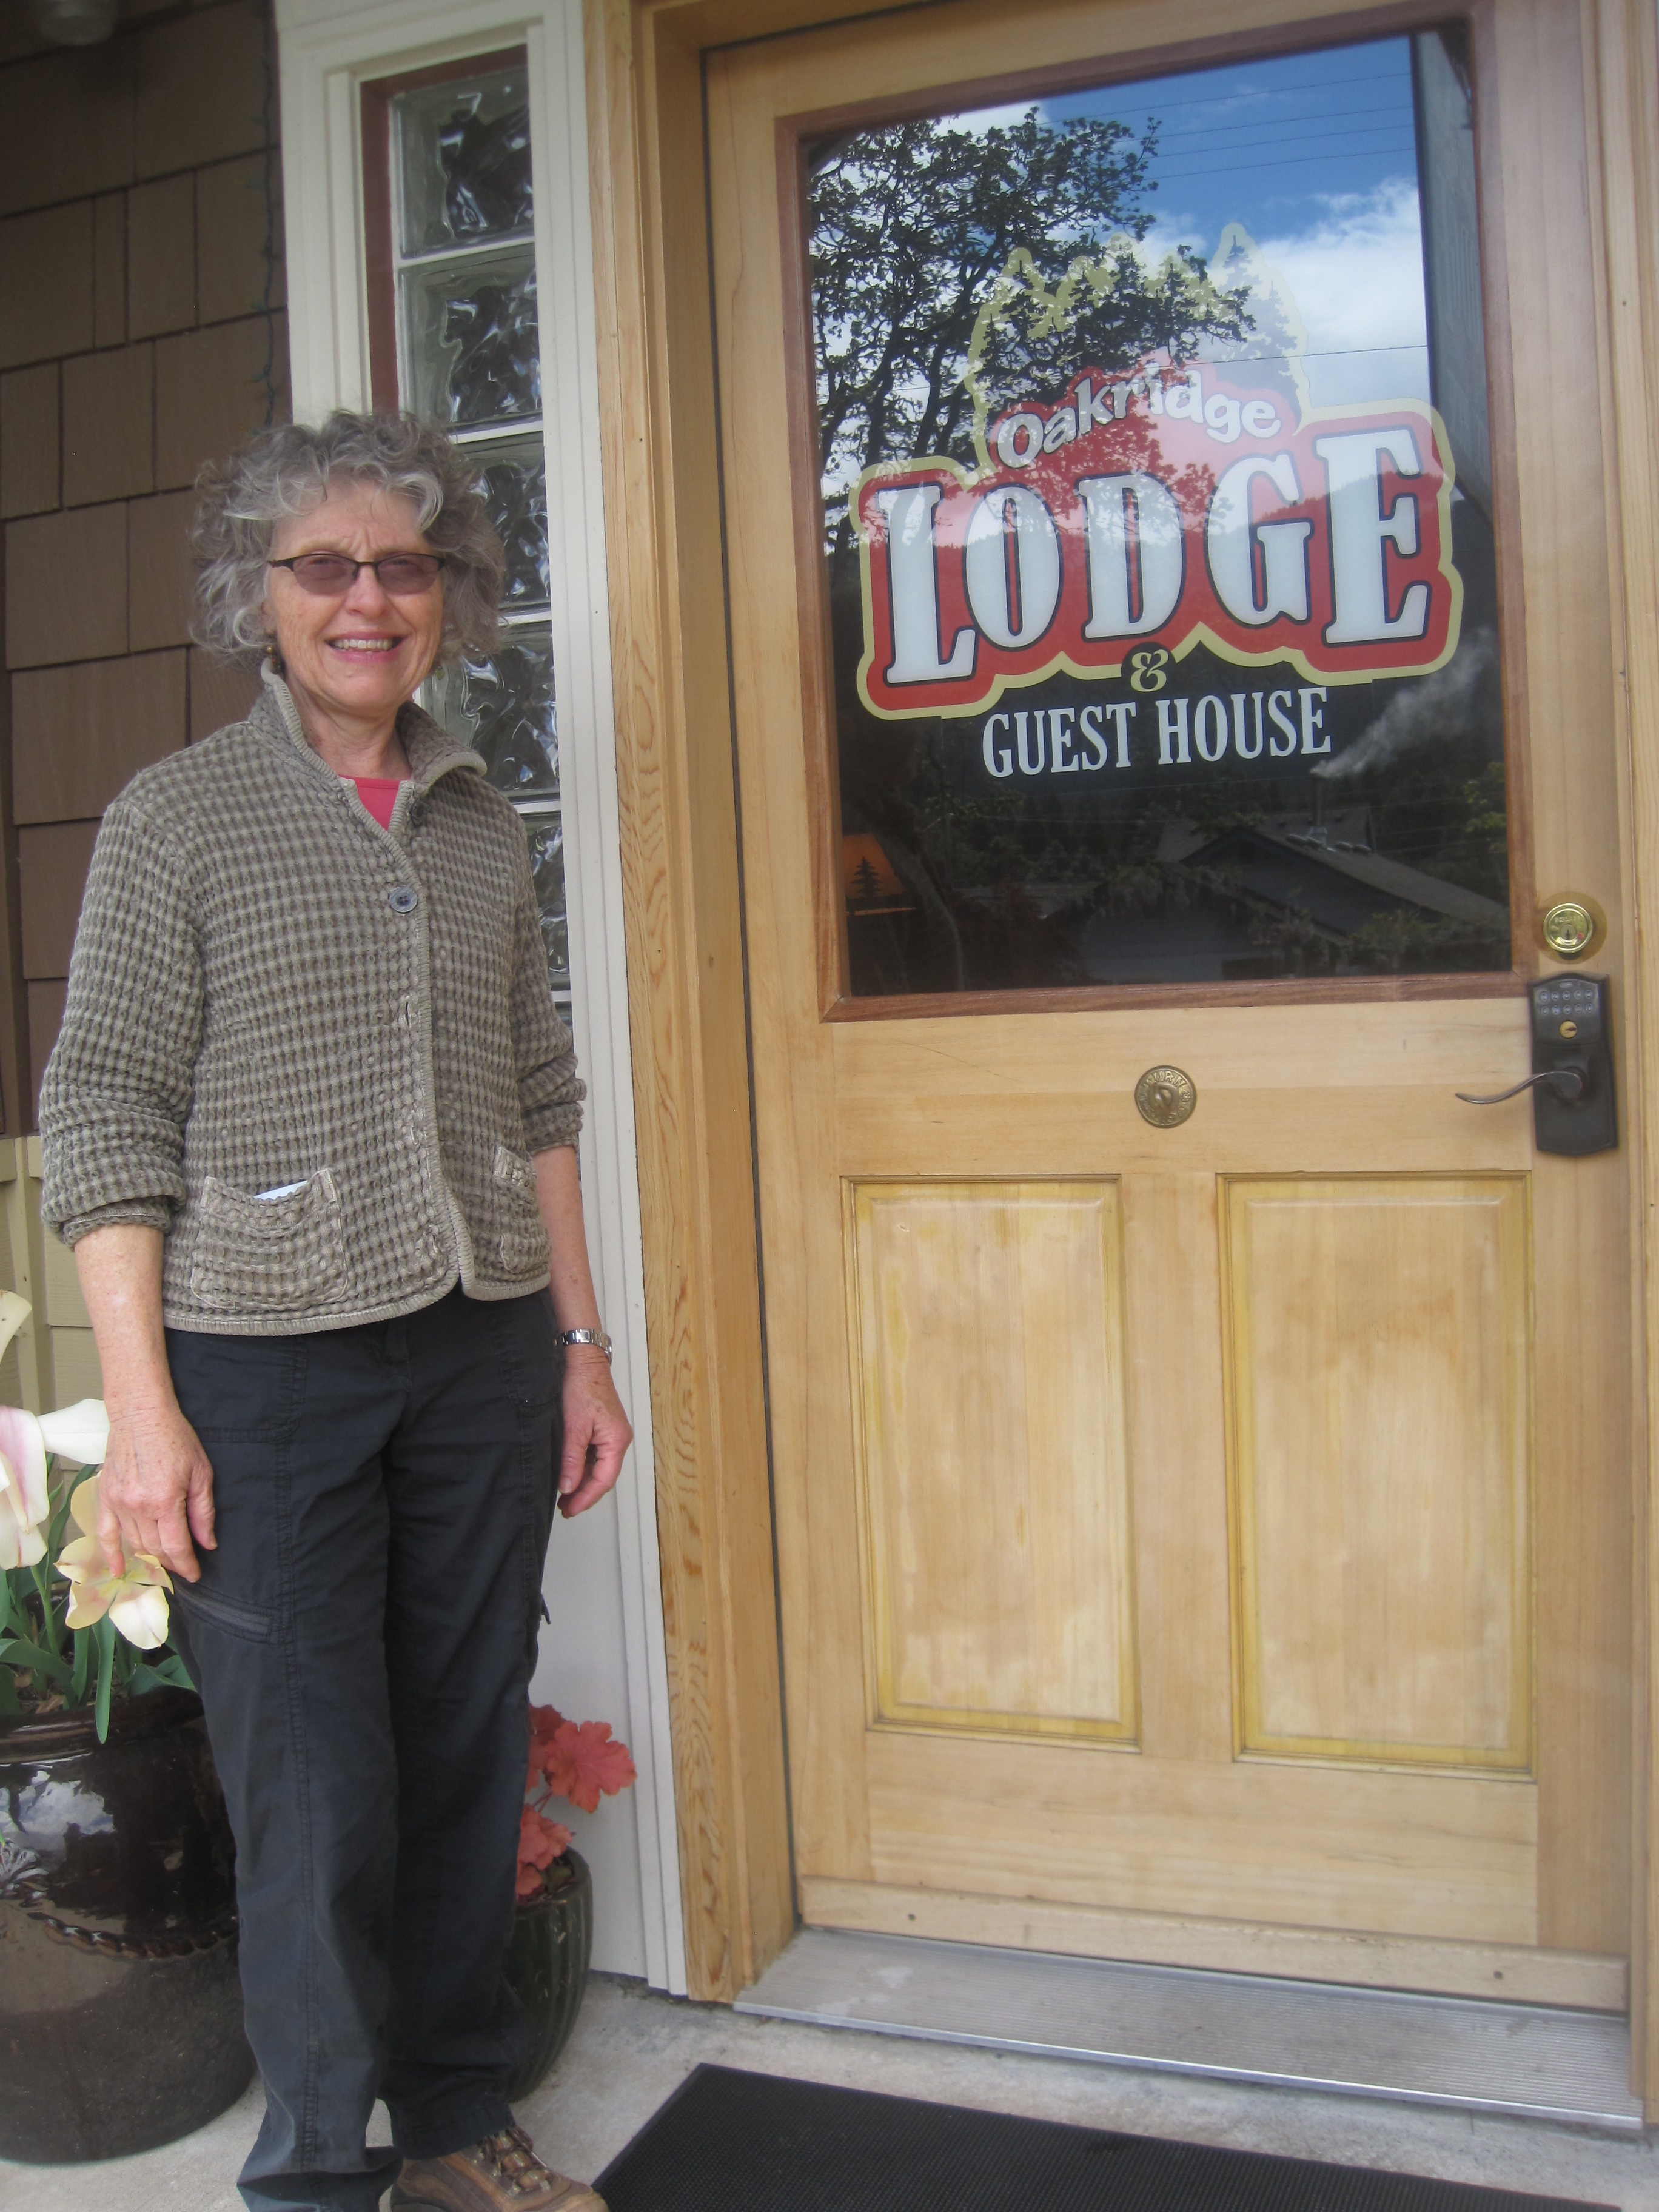 Lynda Kamerrer and her husband own Oakridge Lodge and Uptown Bistro. They have been active in bringing new attractions to the city, such as a walking tour of the town's historic Uptown District.. Photo by Vanessa Salvia